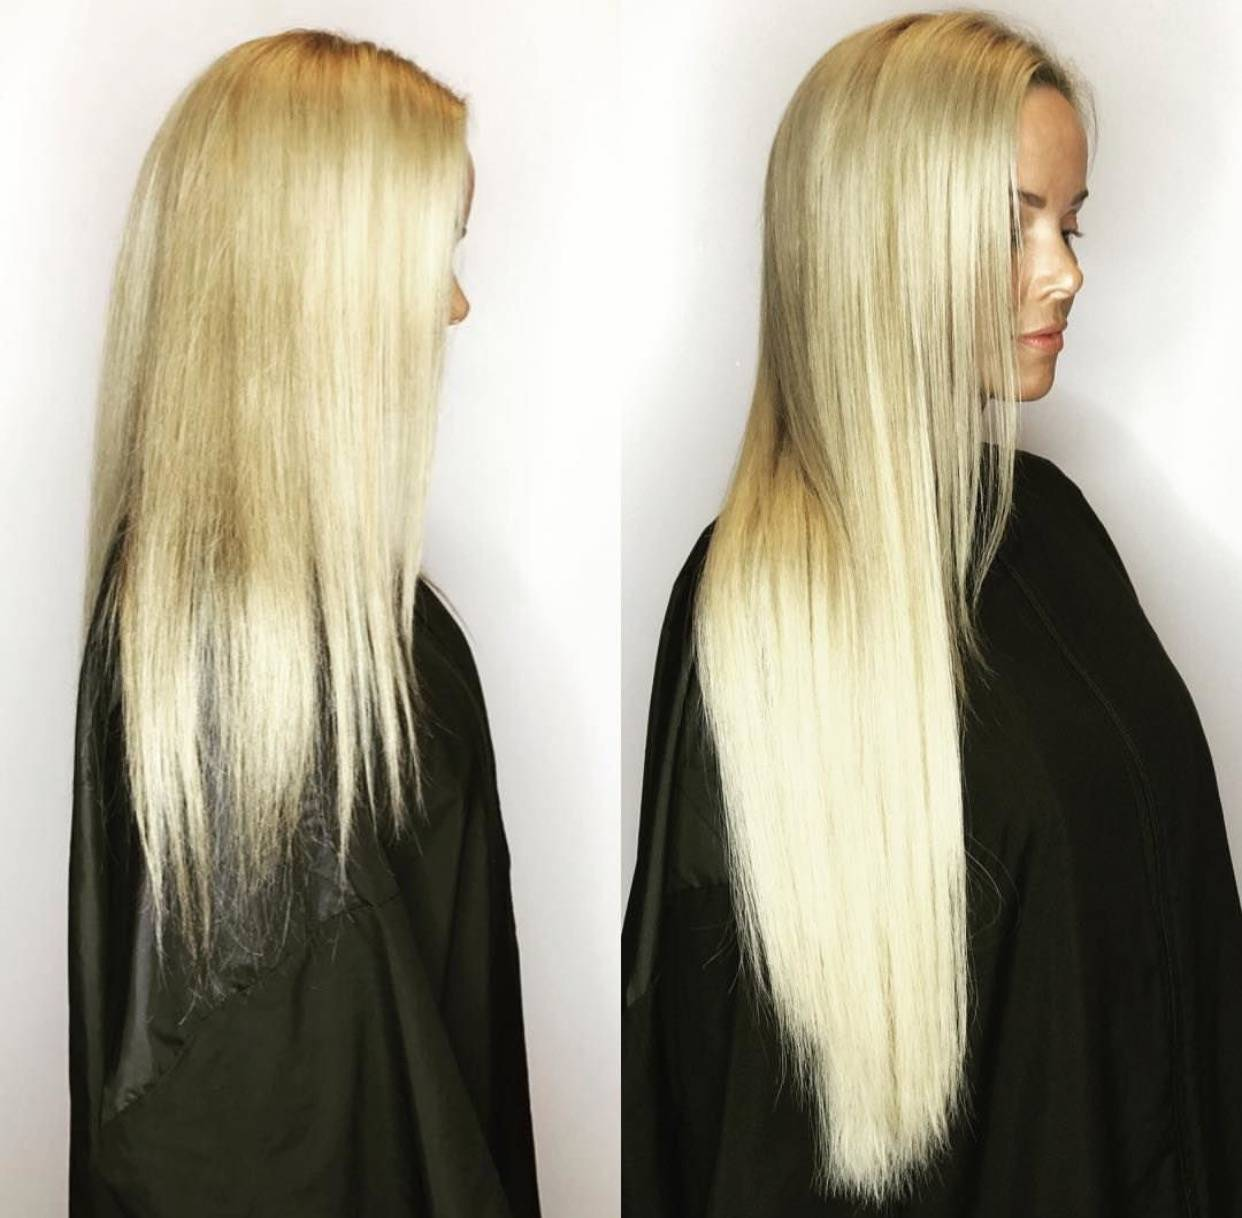 Hair extensions miami great lengths hair extension salon styled hair extensions bonds professionally installed hair extensions solutioingenieria Images